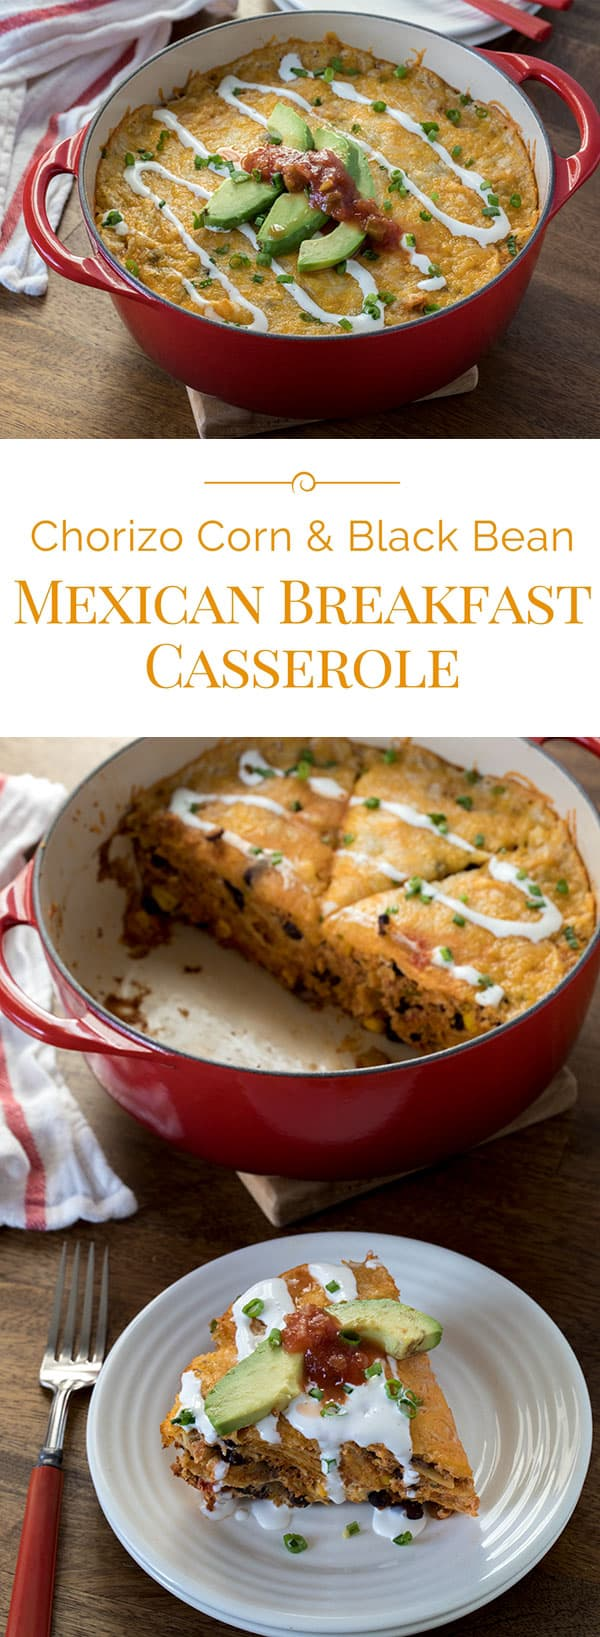 titled recipe collage (and shown) Chorizo Corn Black Bean Mexican Breakfast Casserole